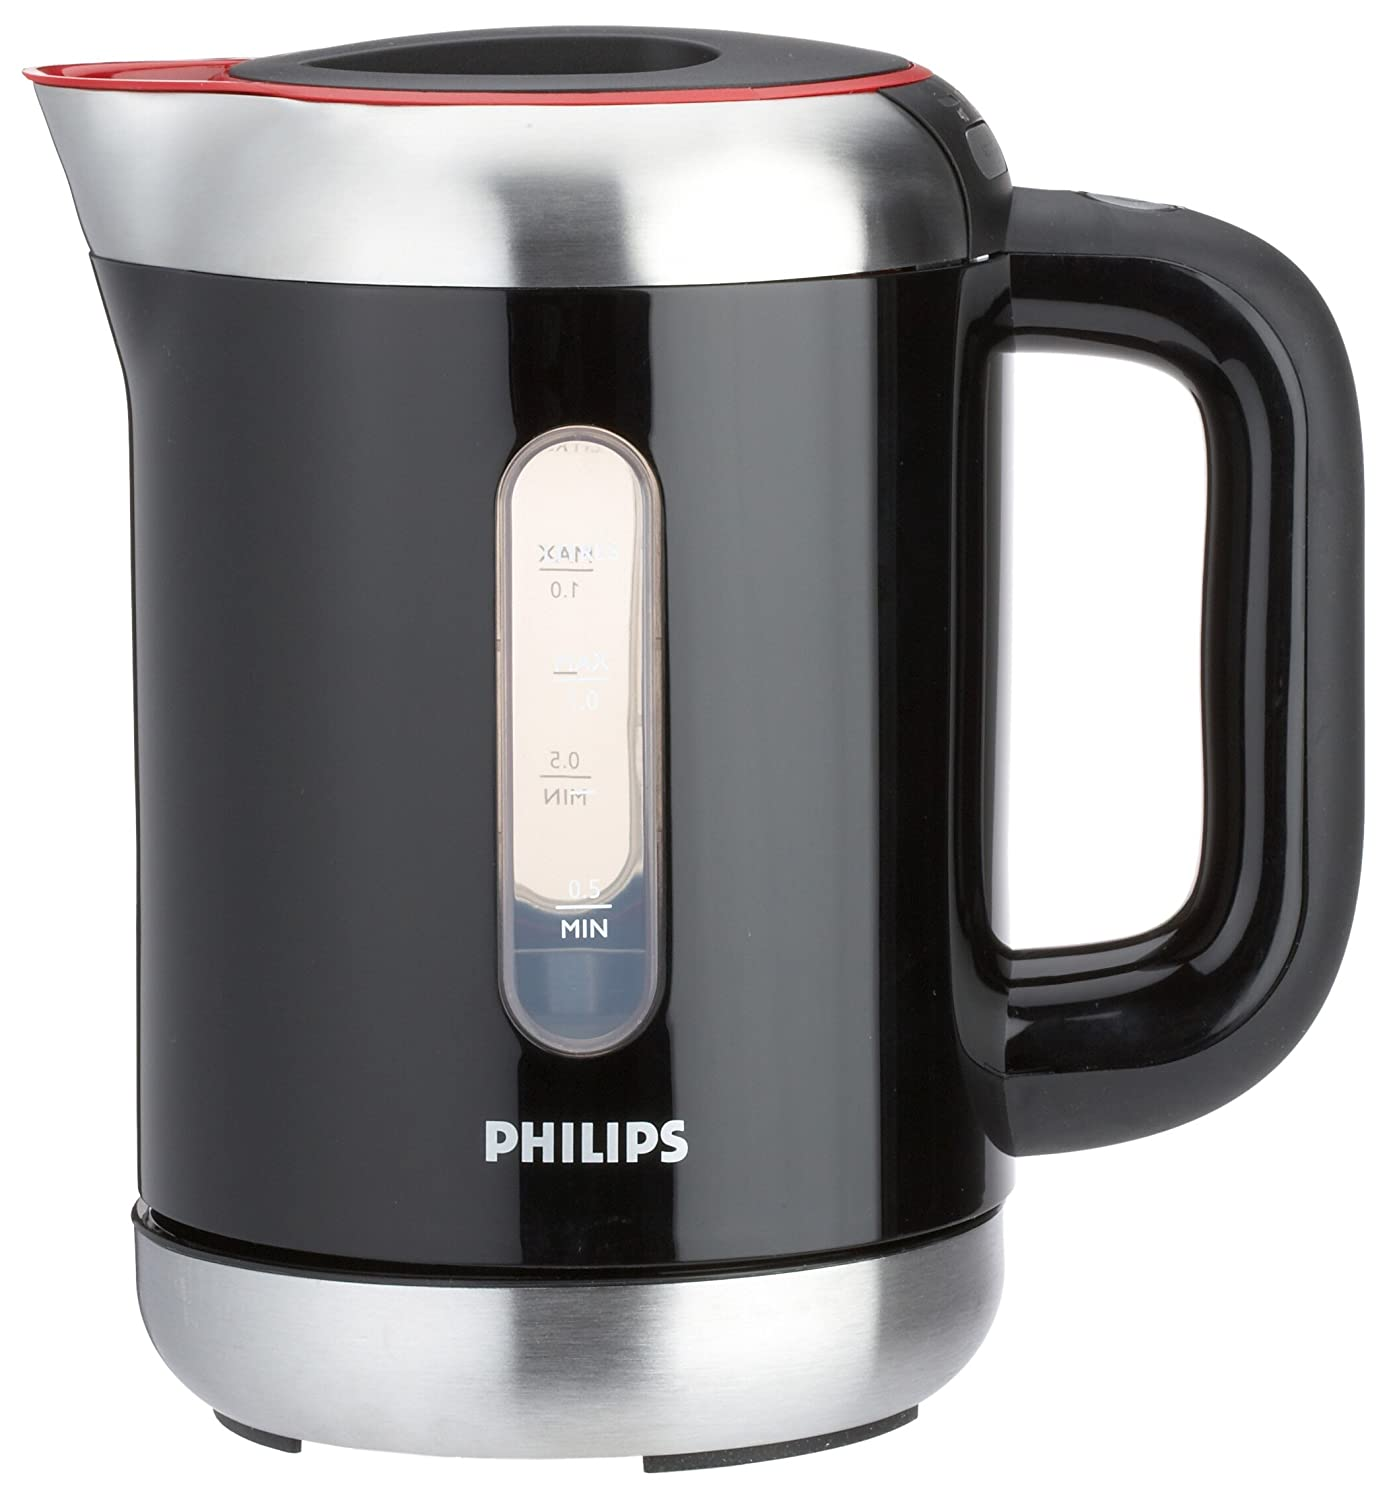 philips hd 468590 wasserkocher essential  2400 watt  1  ~ Wasserkocher Temperatur Einstellbar